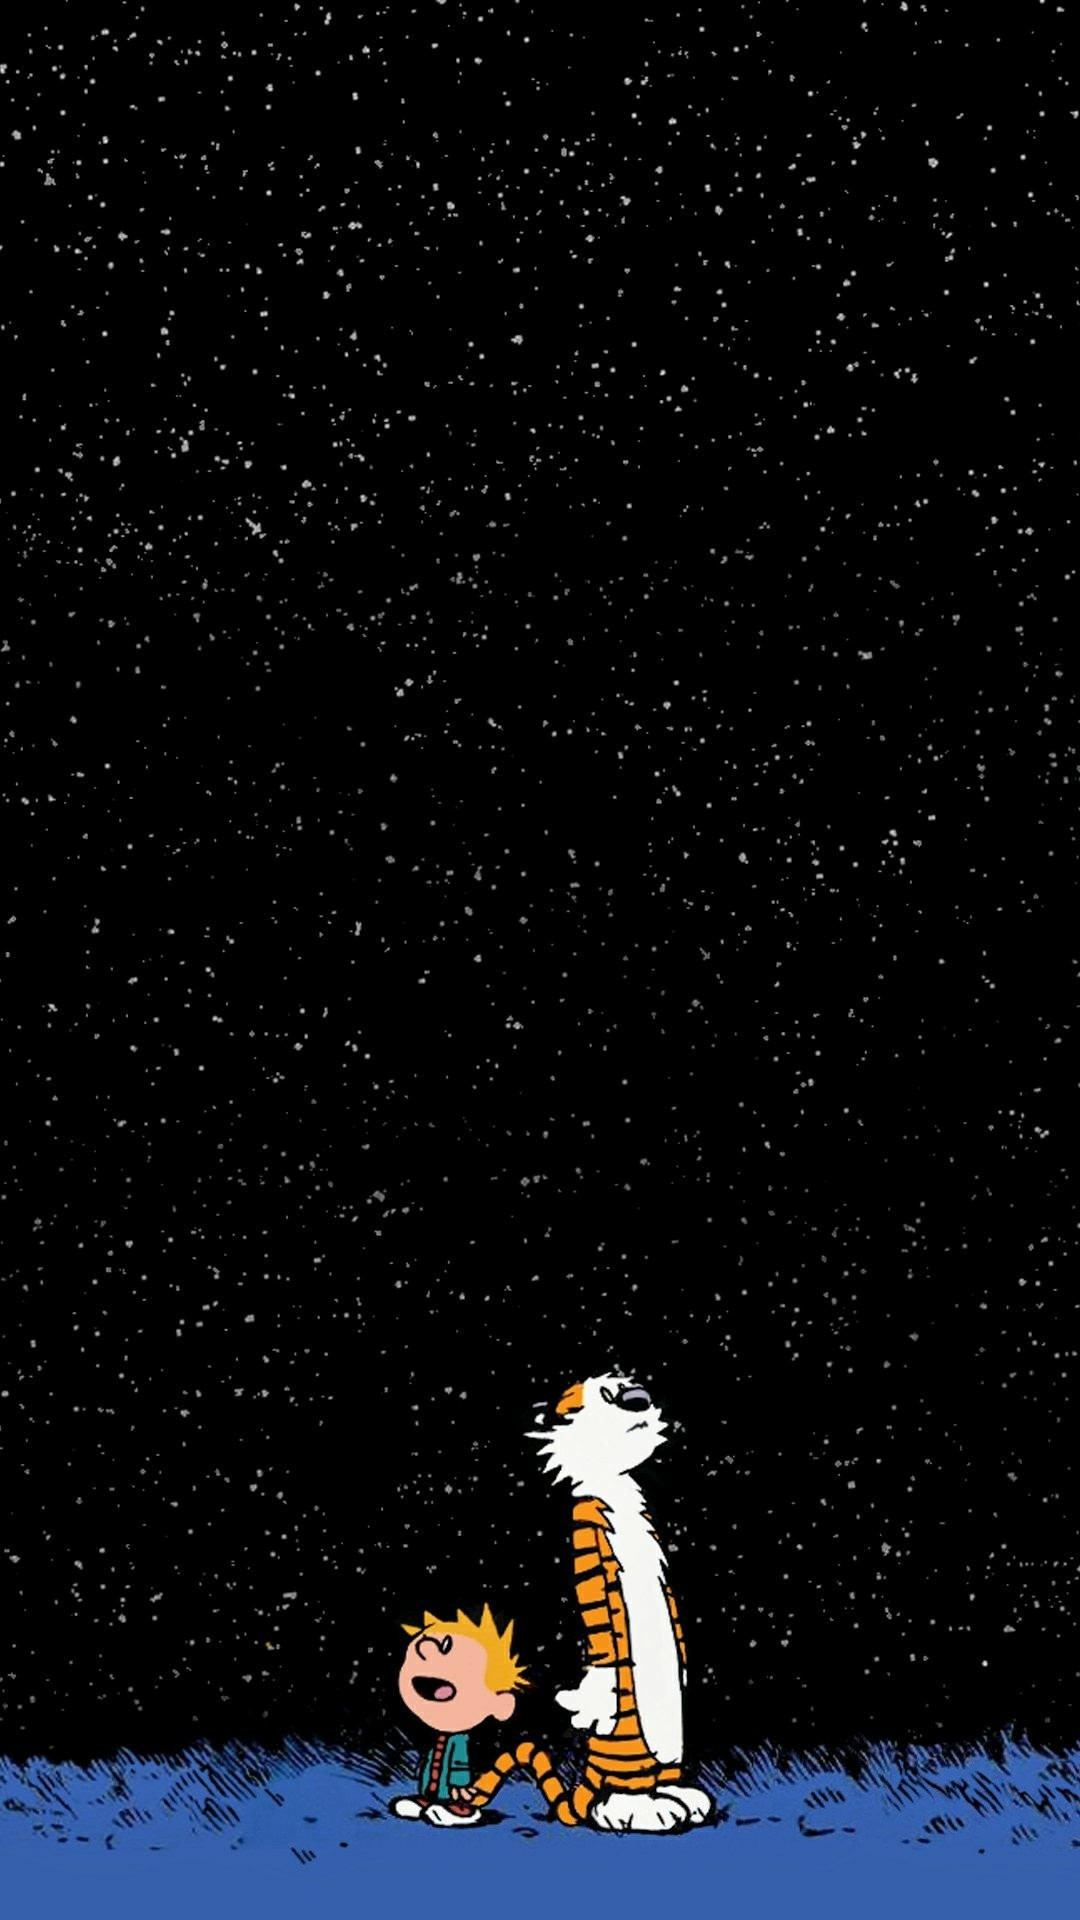 1080x1920 [Request] Can anyone turn this Calvin and hobbes wallpaper into an amoled? [